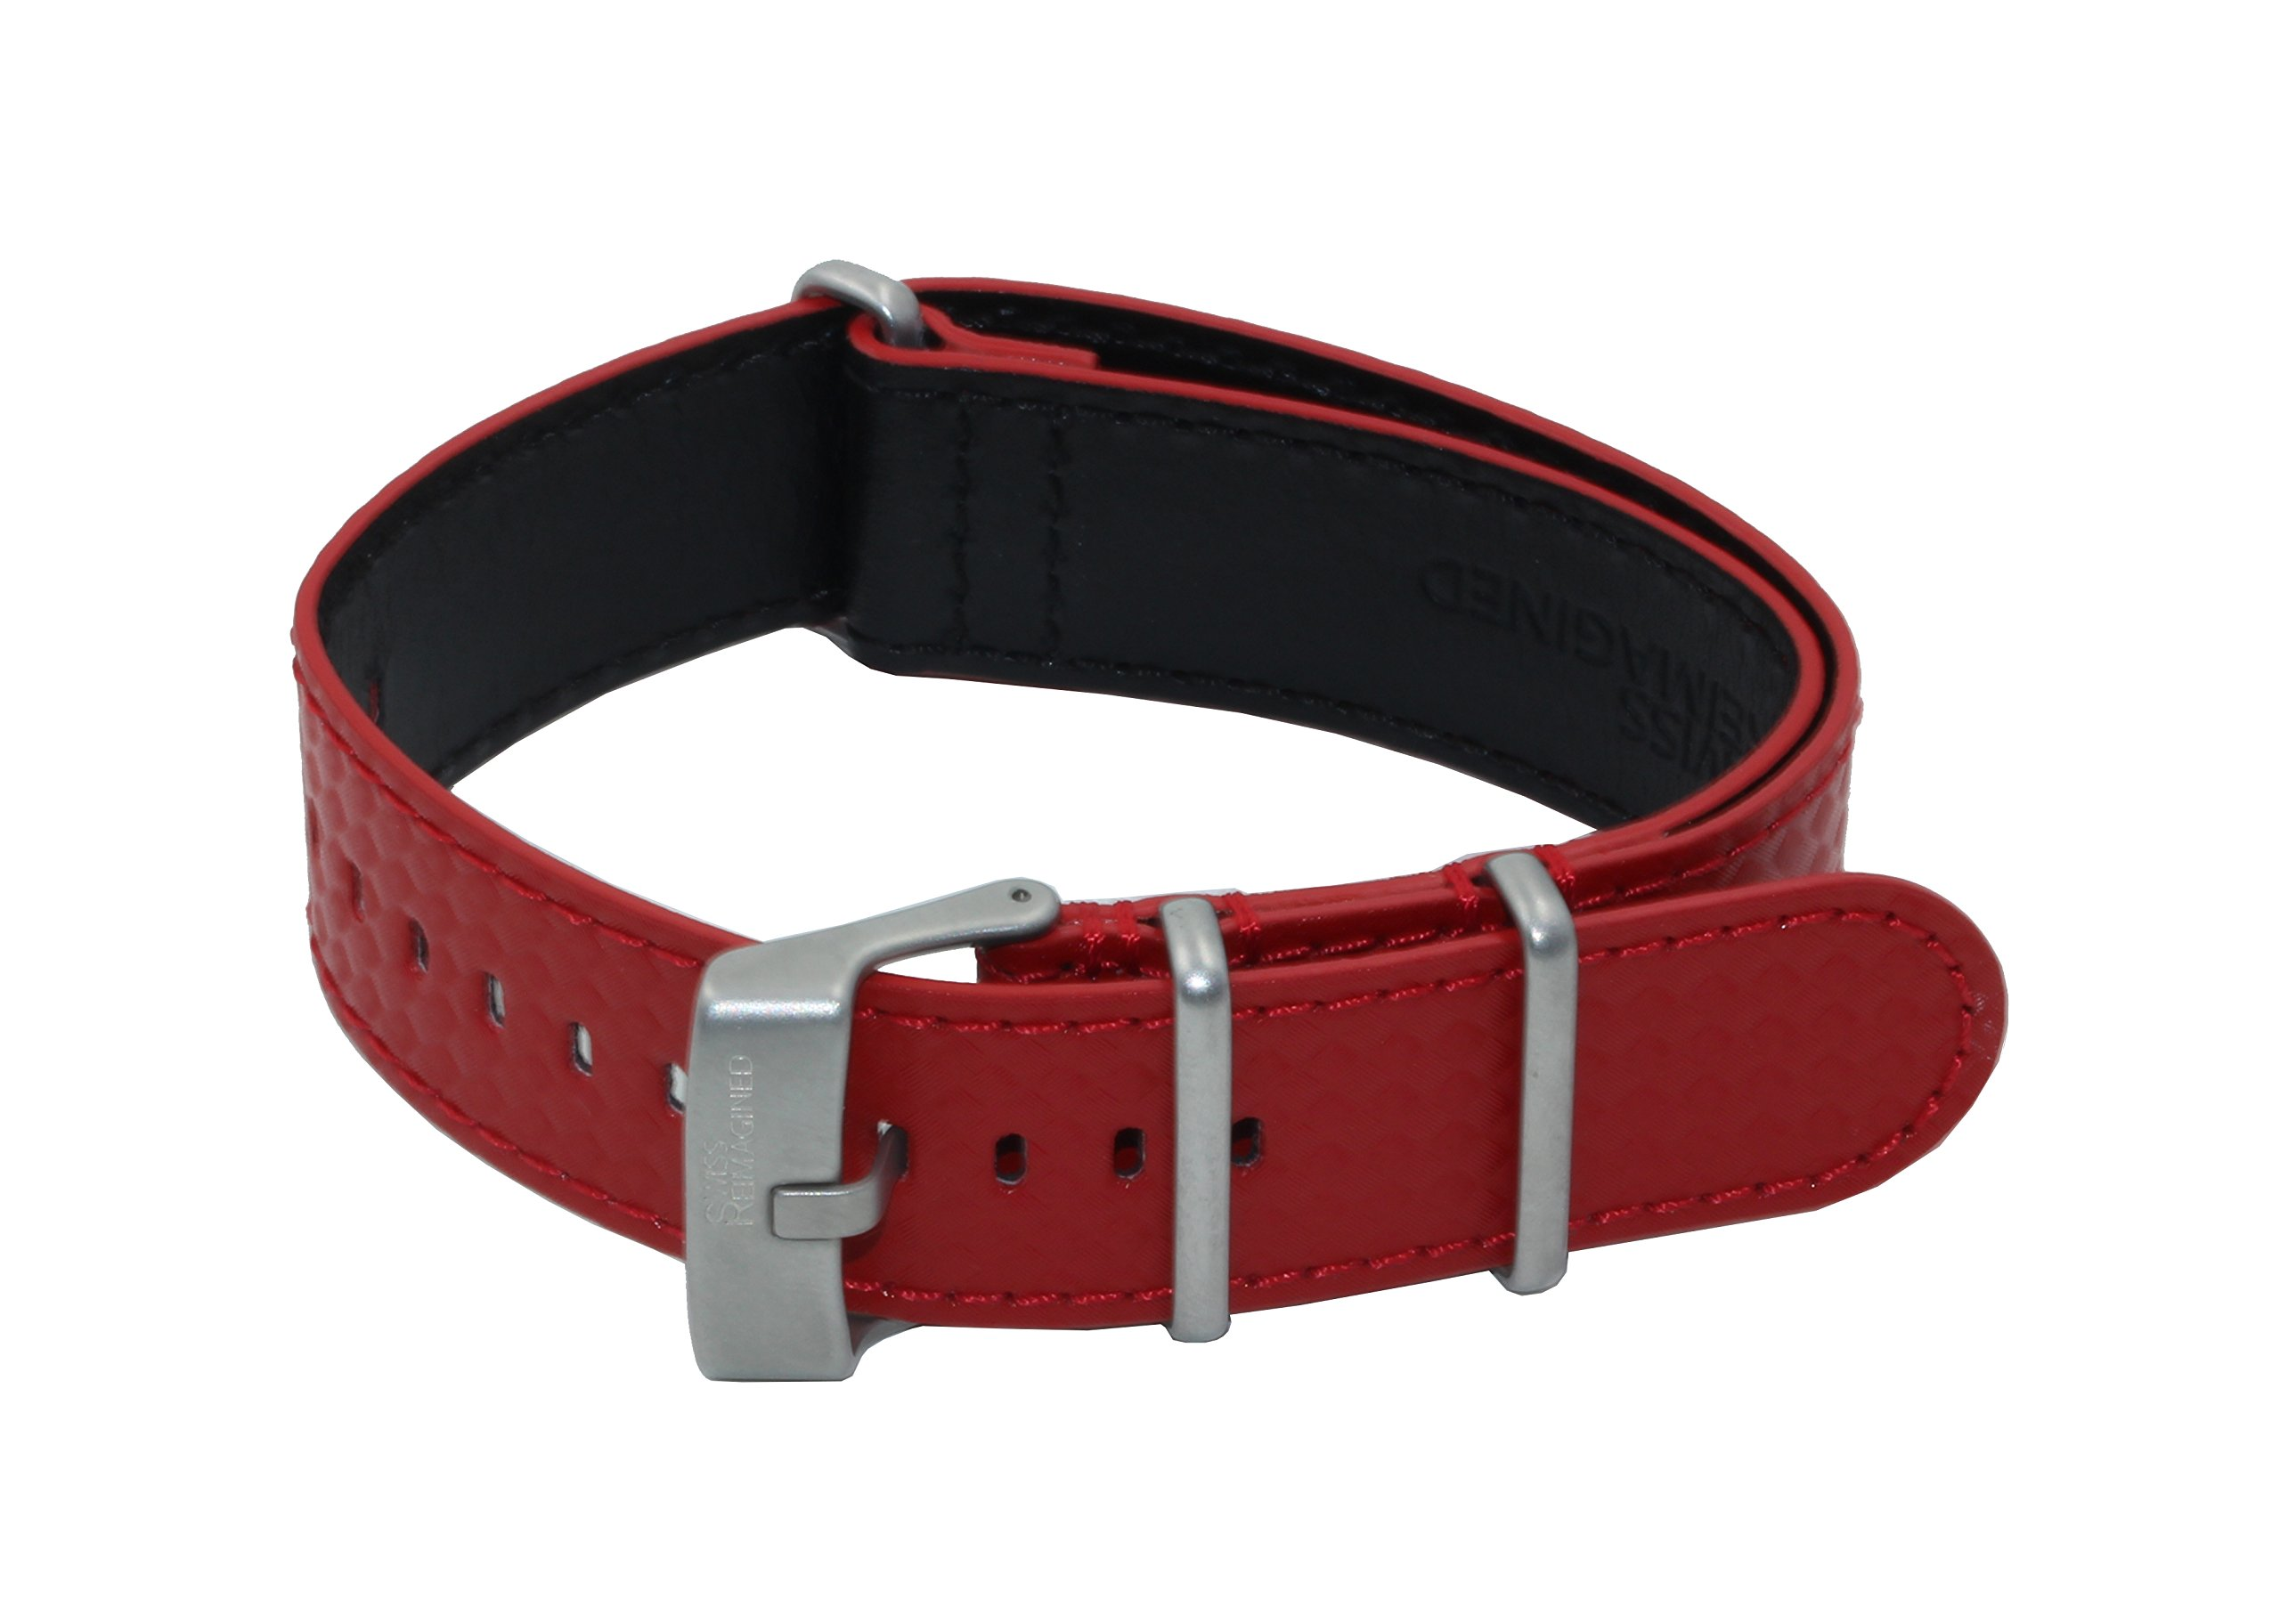 SWISS REIMAGINED Quality Genuine Leather NATO Replacement Carbon Watch Band Strap - Red by Swiss Reimagined (Image #1)